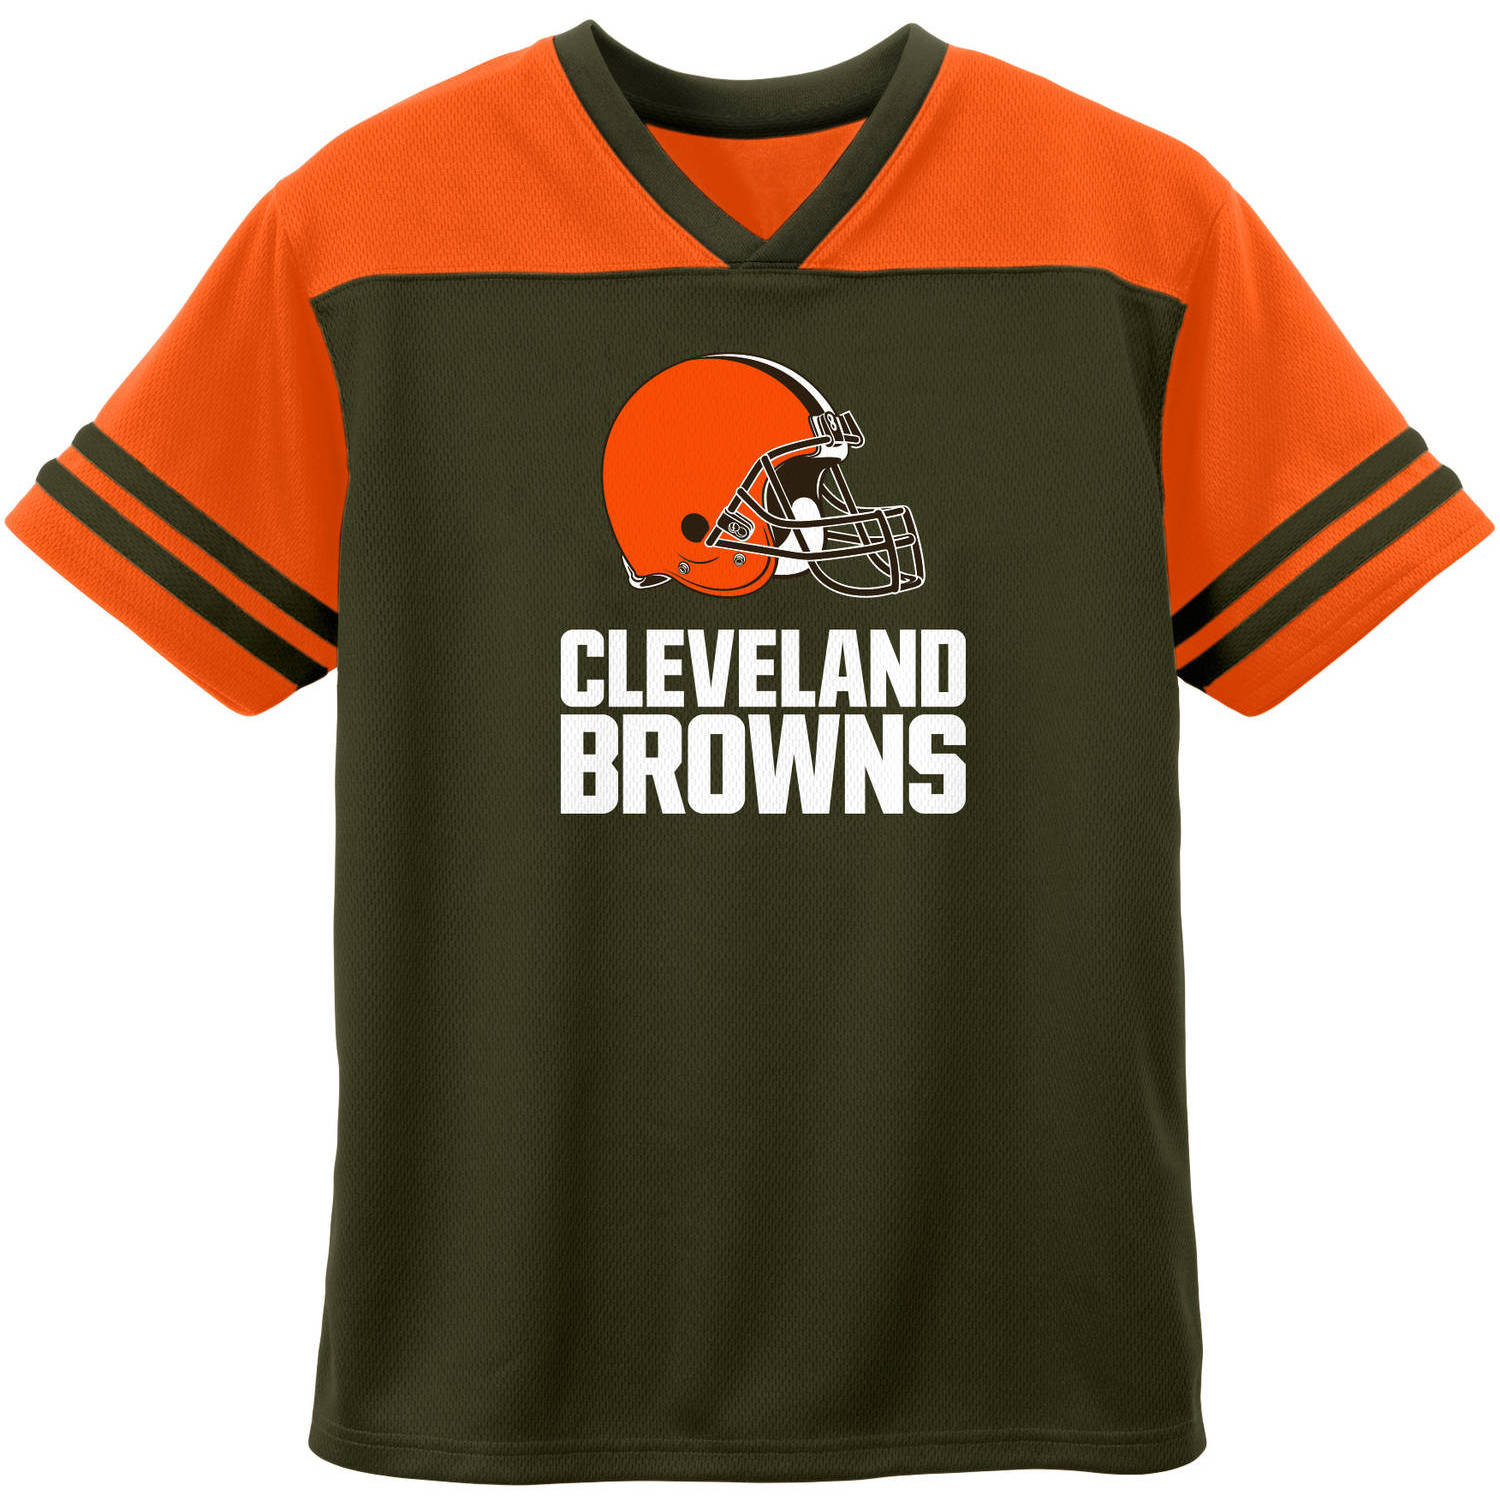 NFL Cleveland Browns Youth Short Sleeve Graphic Tee